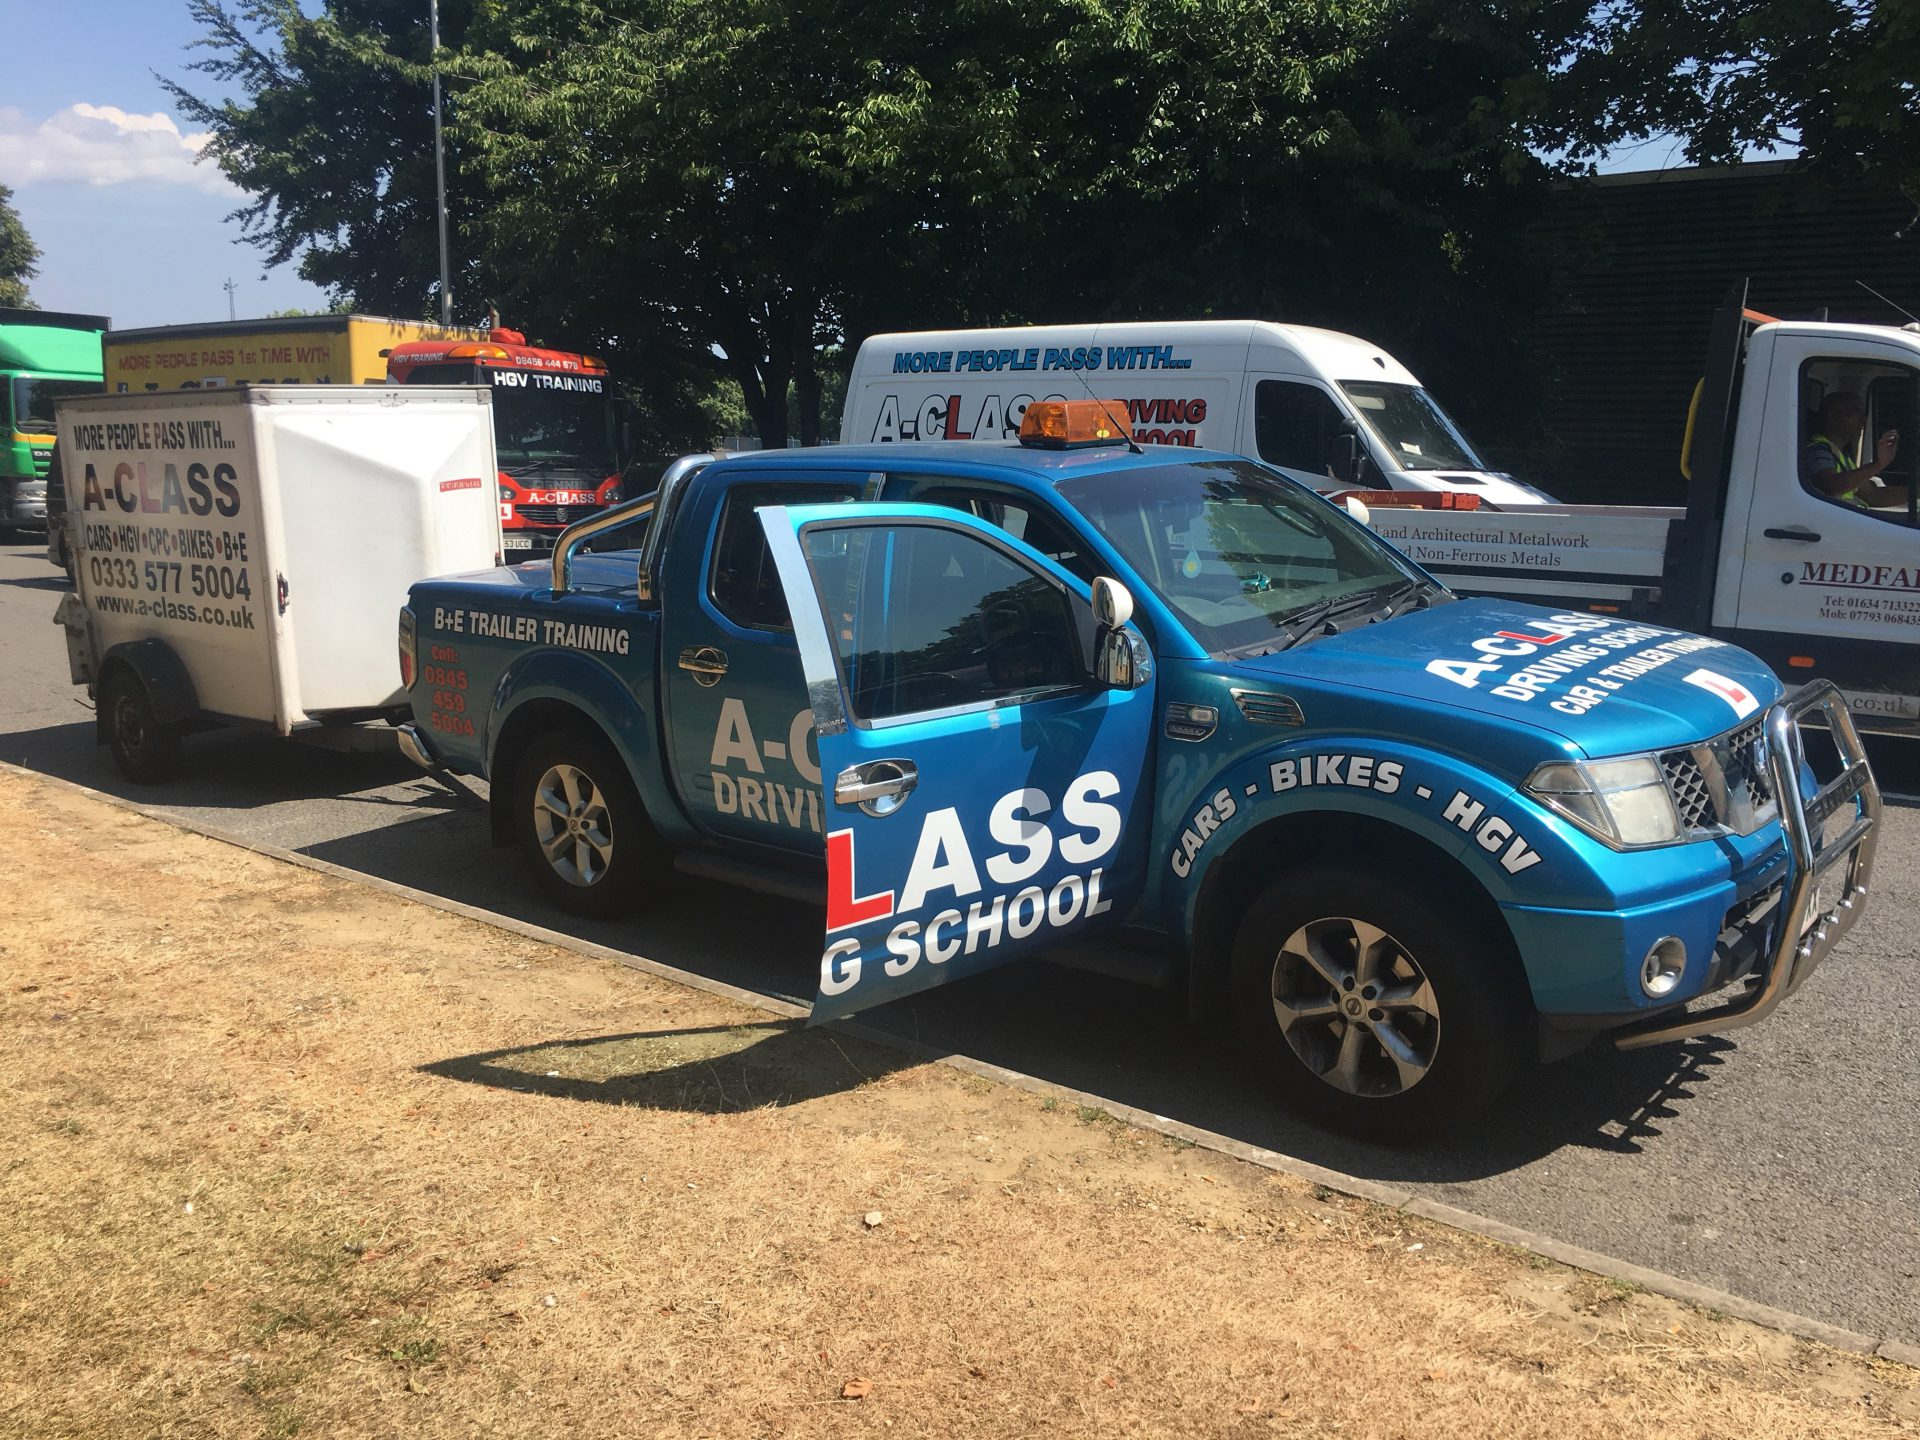 Towing test B+E – what to expect and how I did it